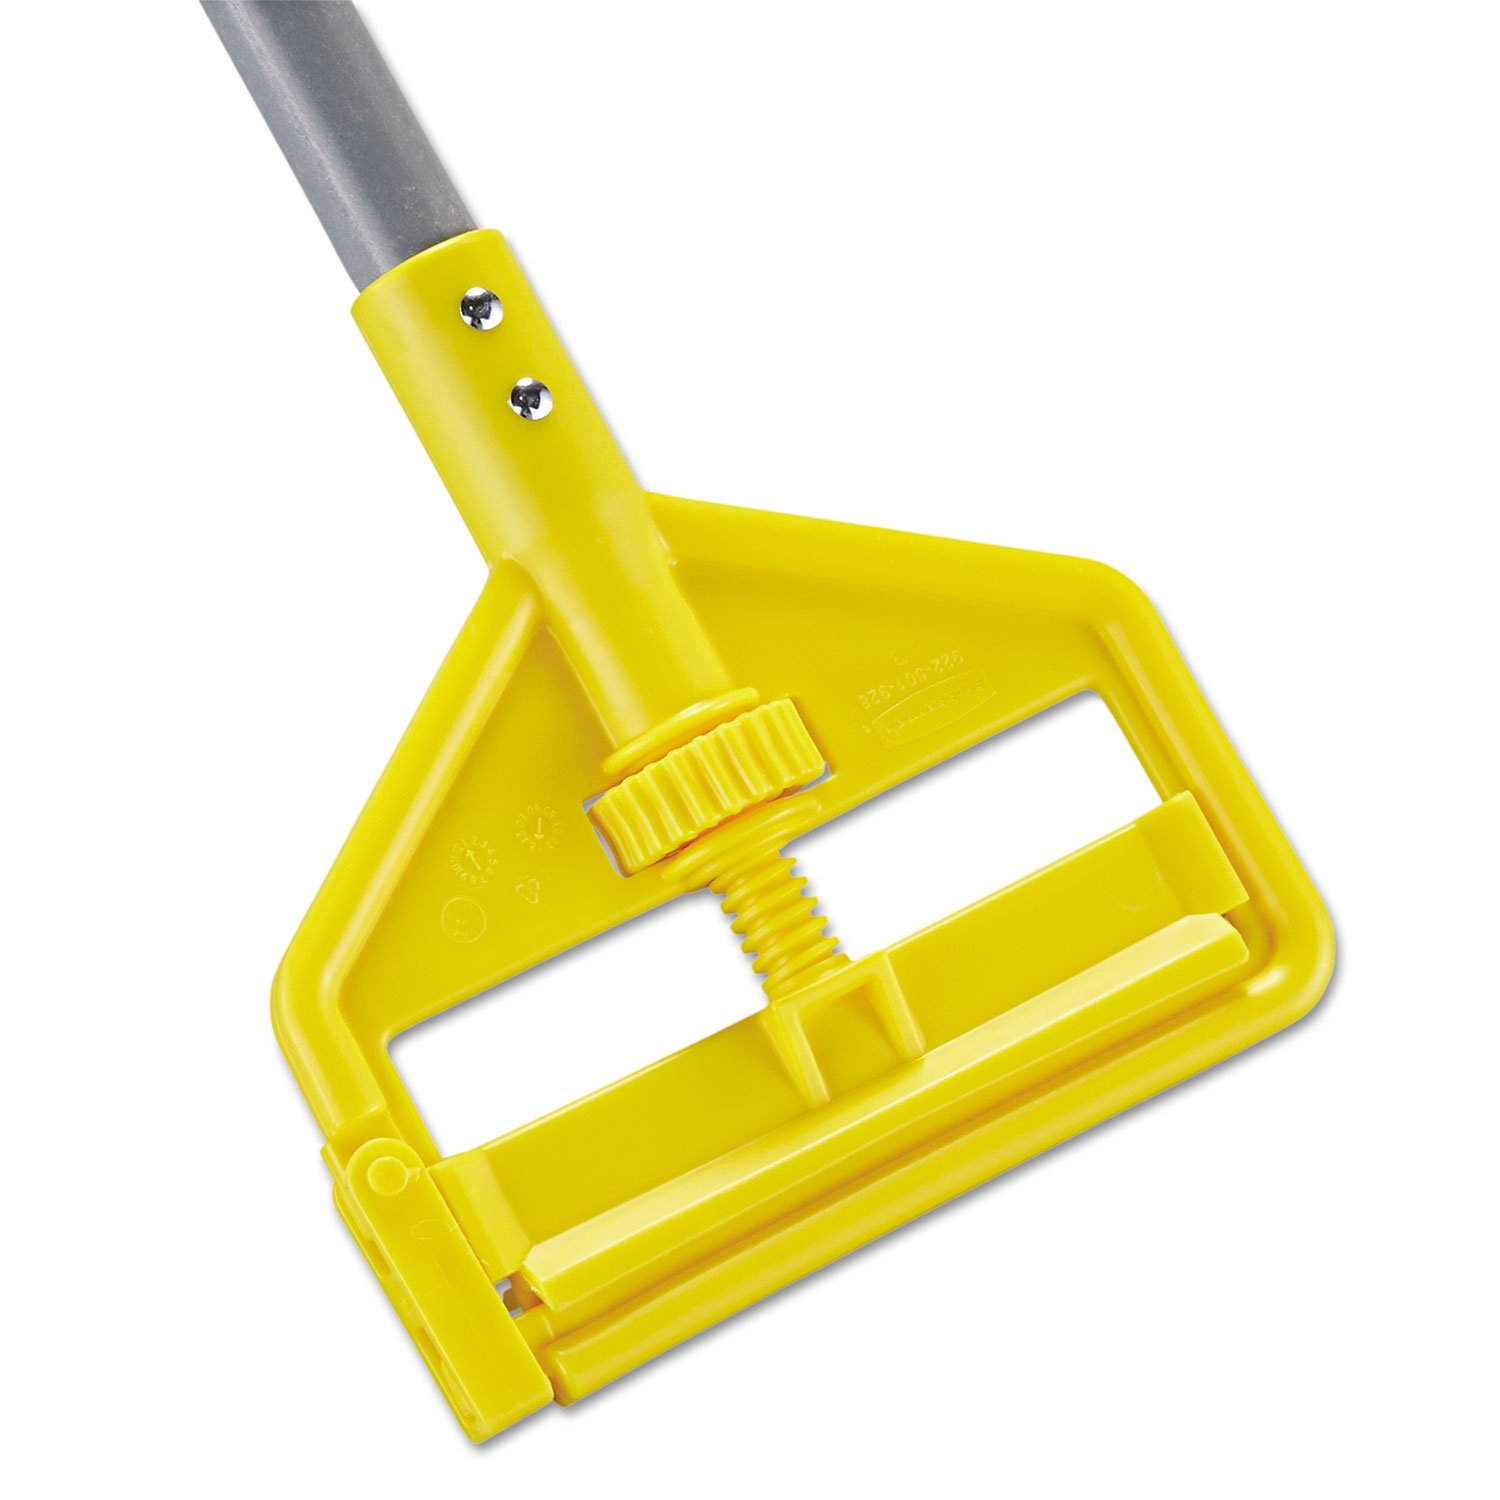 RCPH146 - Invader Fiberglass Side-Gate Wet-Mop Handle